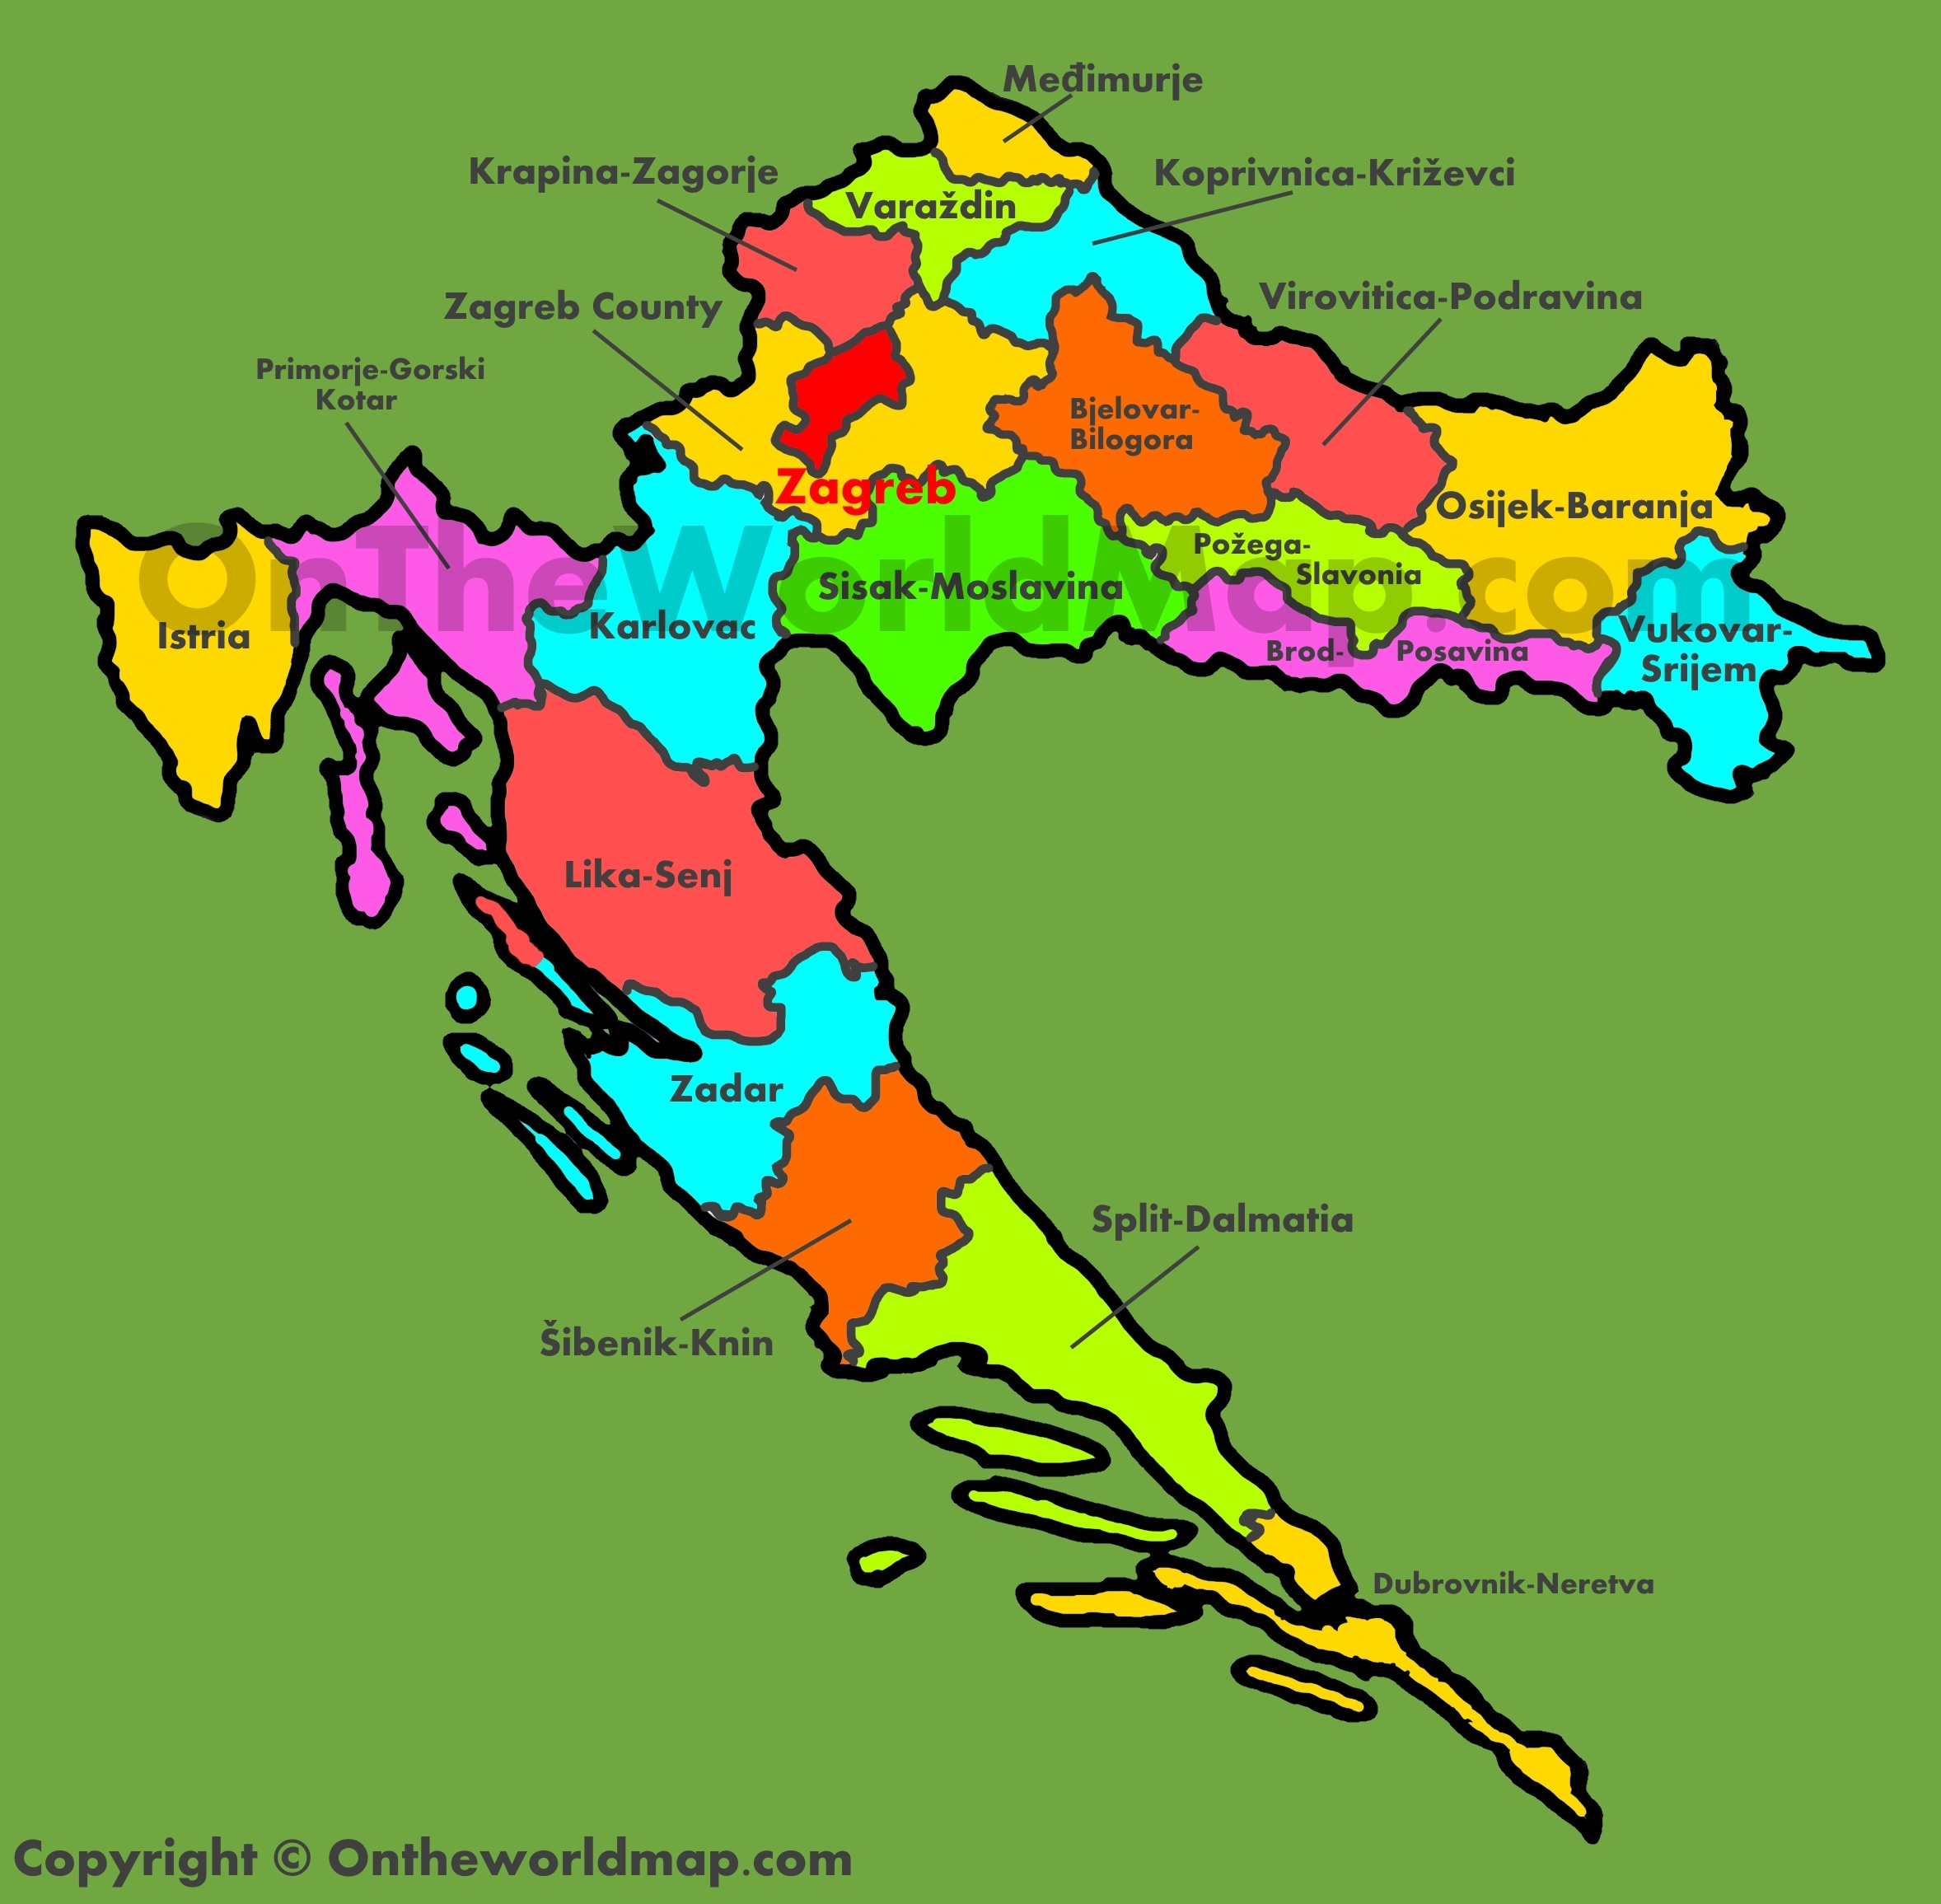 Administrative map of Croatia on portugal map, czech republic map, sweden map, argentina map, iceland map, europe map, belgium map, india map, thailand map, belarus map, italy map, dalmatia map, turkey map, australia map, slovenia map, libya map, lebanon map, germany map, yugoslavia map, greece map, cuba map, denmark map, syria map, france map, italian map, ukraine map, spain map, russia map, eurasia map, austria map, egypt map, chile map, cyprus map, ireland map, mexico map, odessa map,